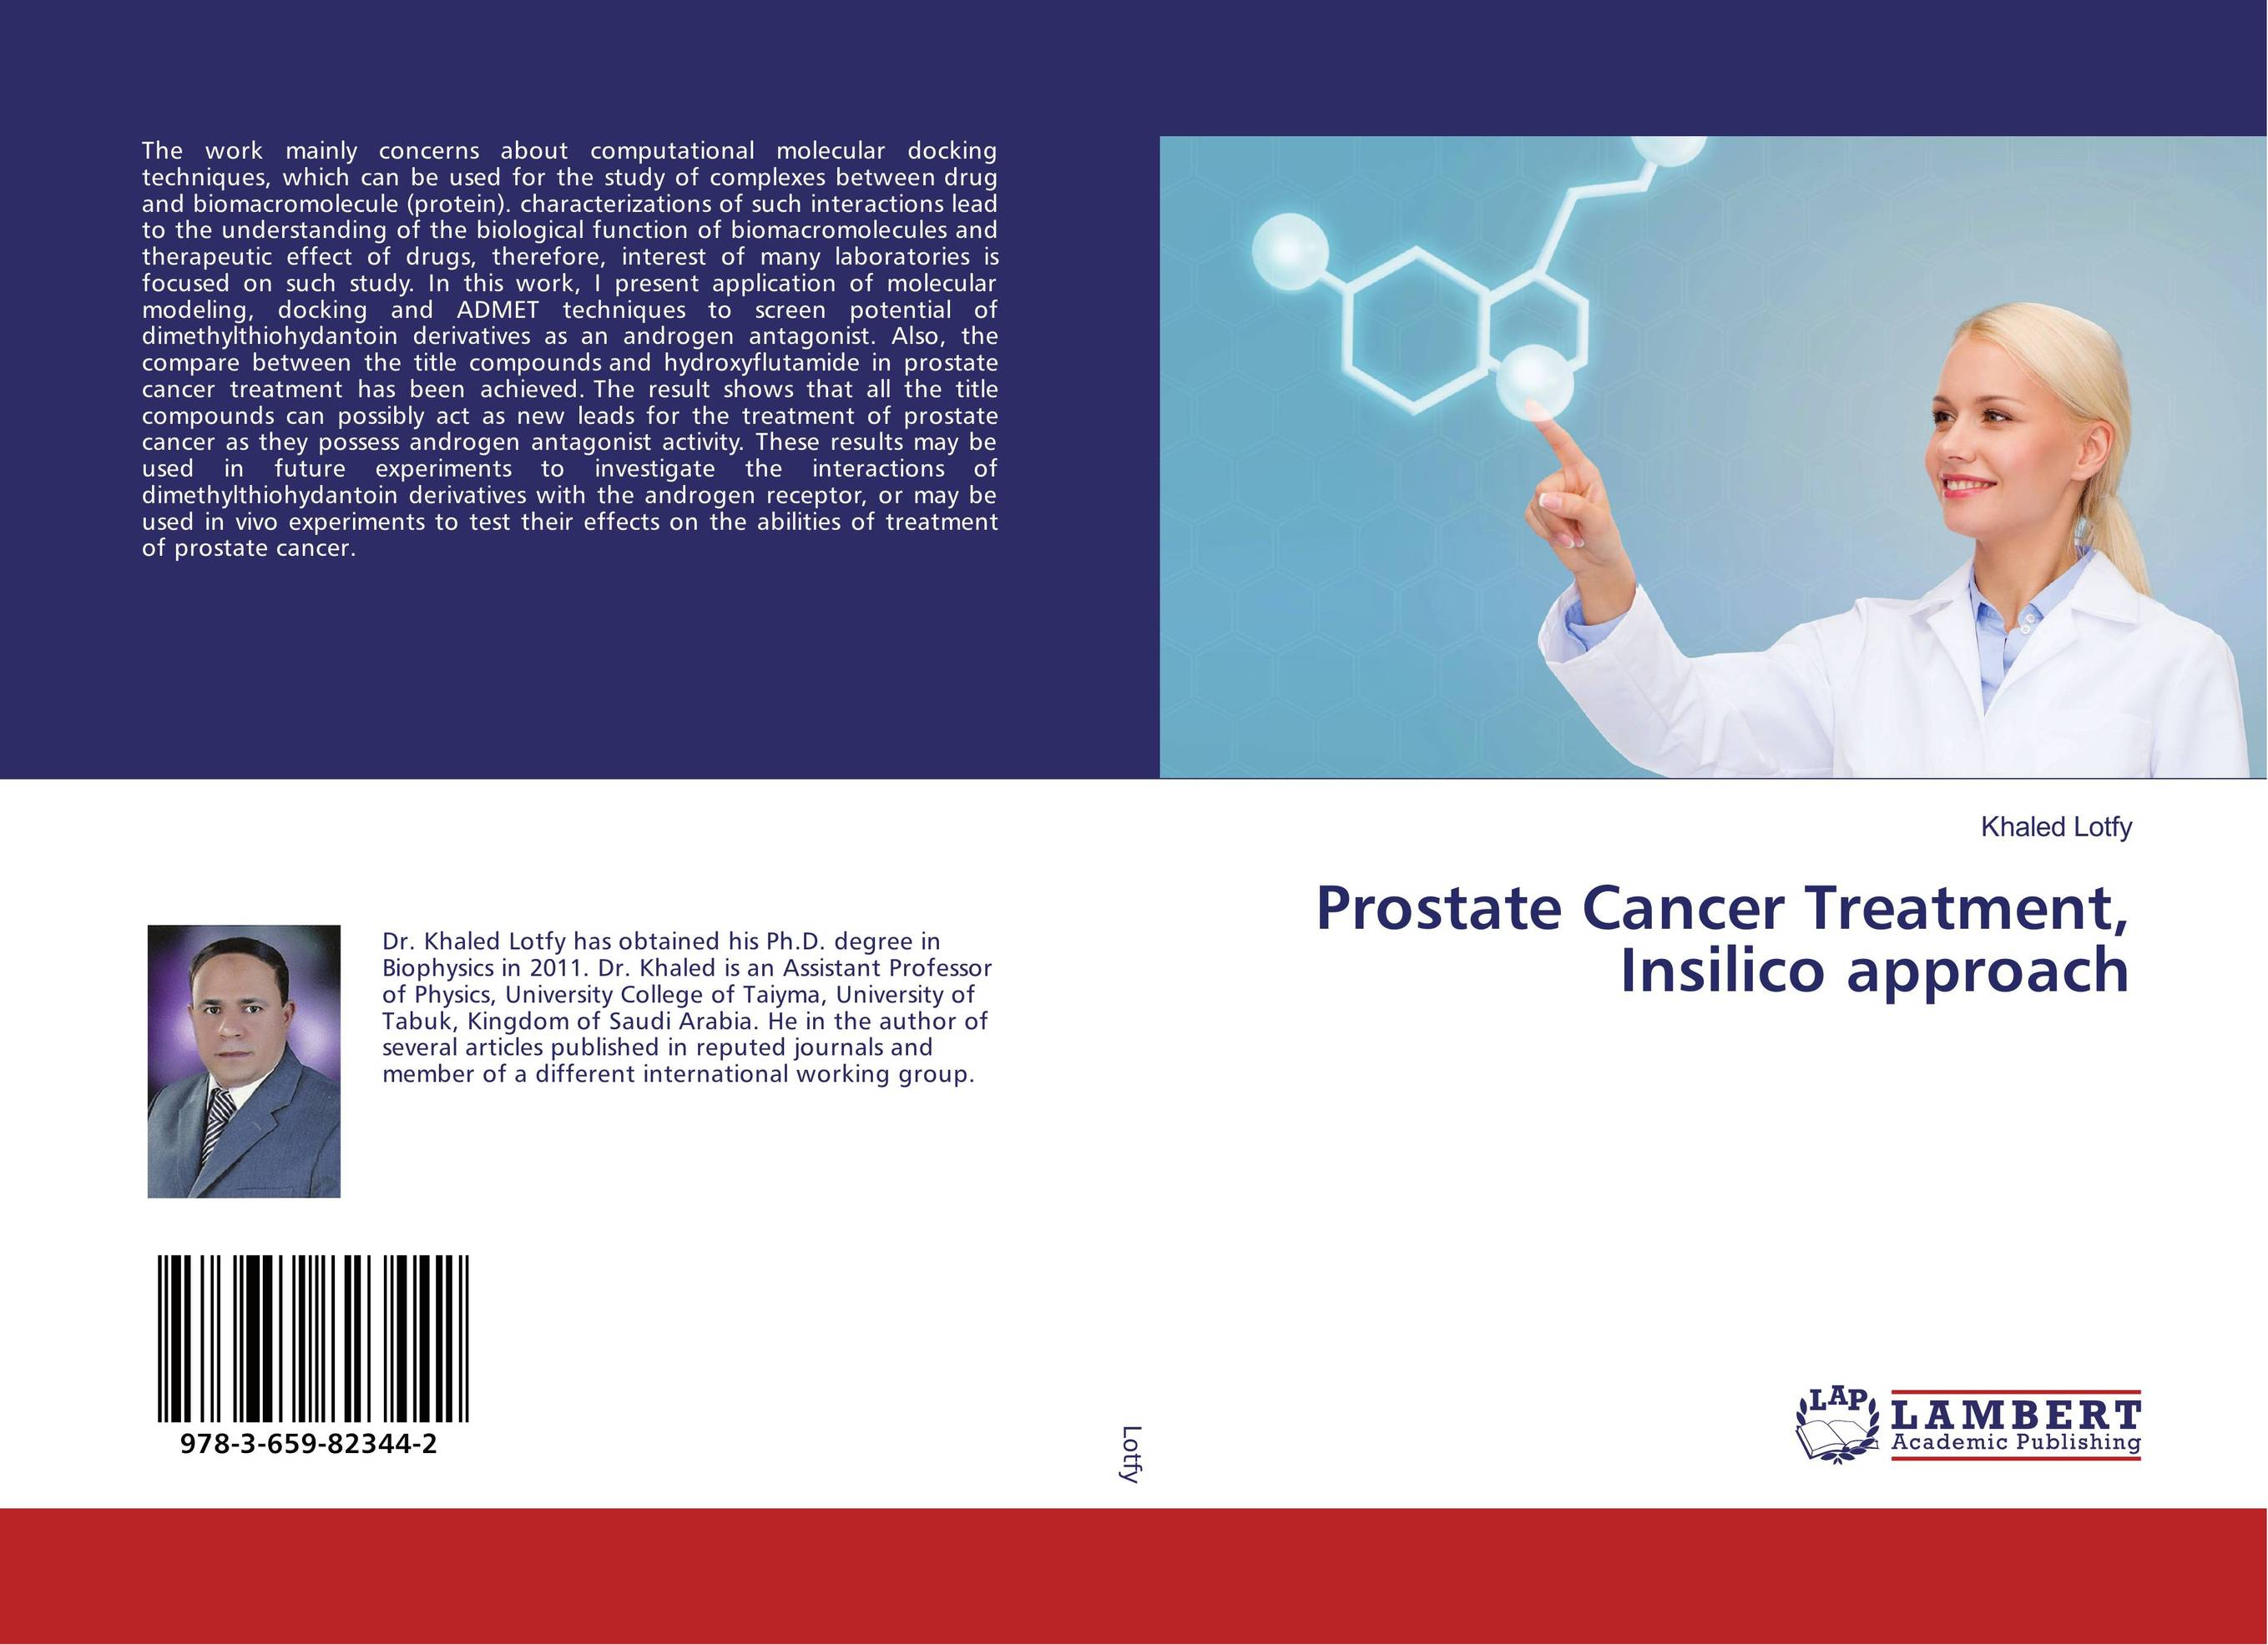 Prostate Cancer Treatment, Insilico approach jose sandoval how benefit finding leads to improved outcomes in prostate cancer